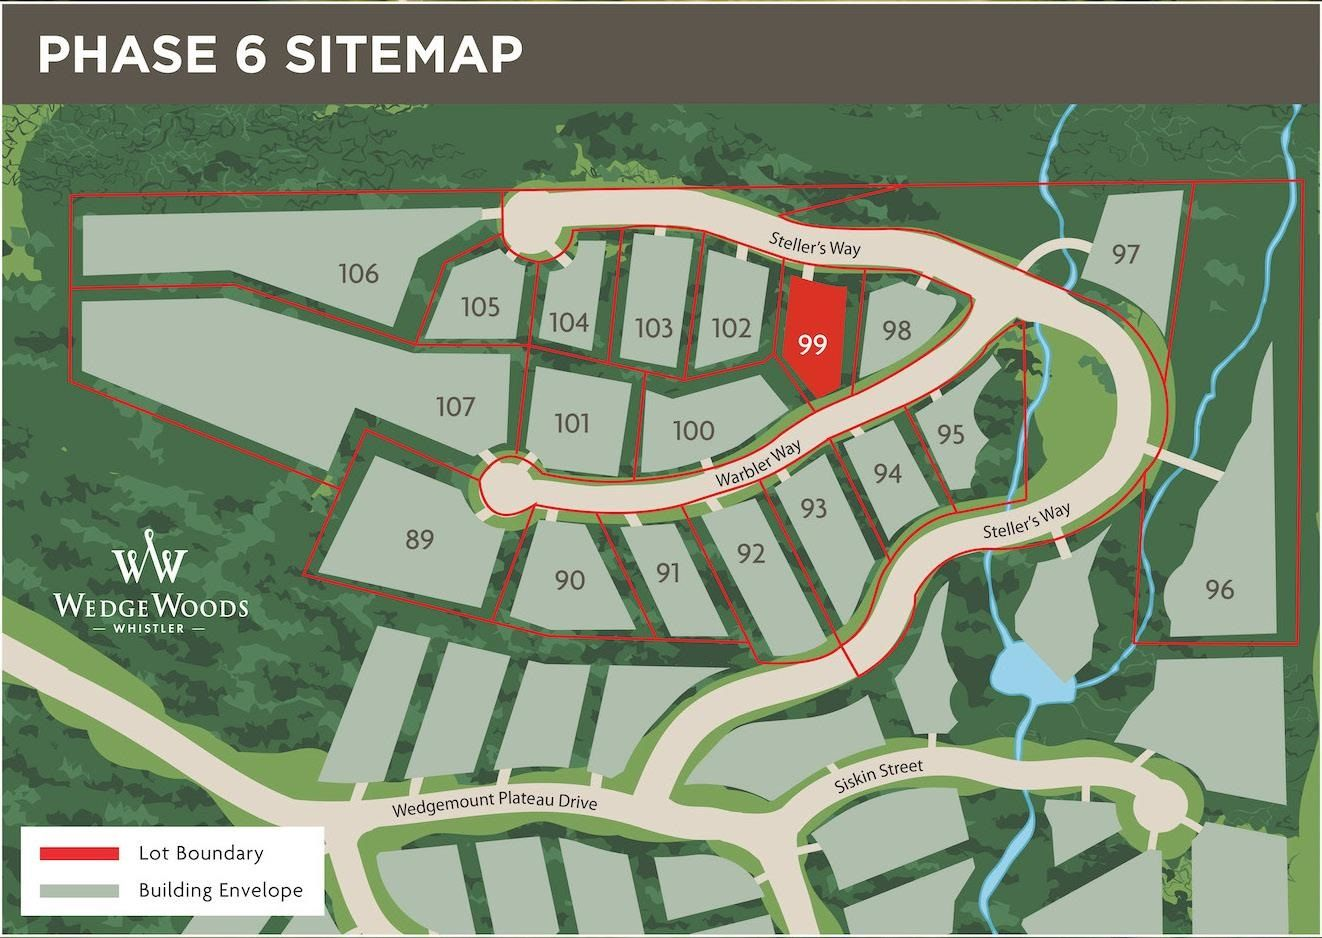 """Main Photo: 9304 STELLER'S Way in Whistler: WedgeWoods Land for sale in """"Wedgewoods"""" : MLS®# R2604453"""